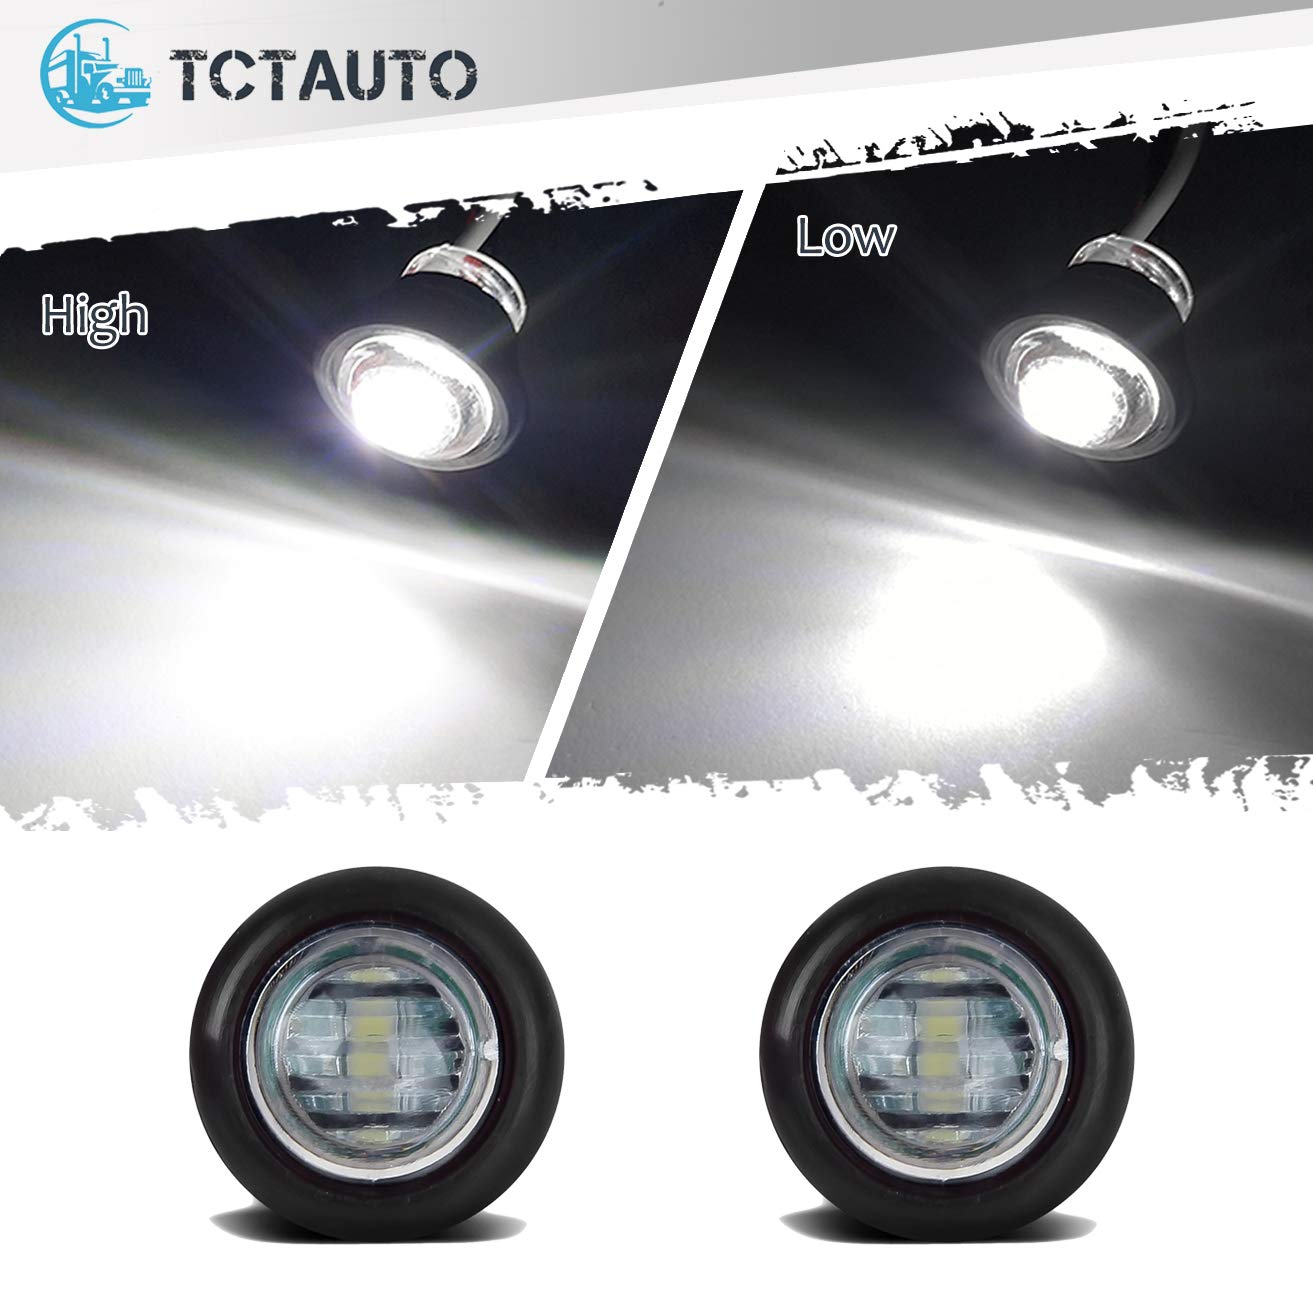 Pack of 2 TCTAuto 3//4 White Round LED Marker Light Rubber Grommet Miniature Type with 3 Wire 2 Function High /& Low